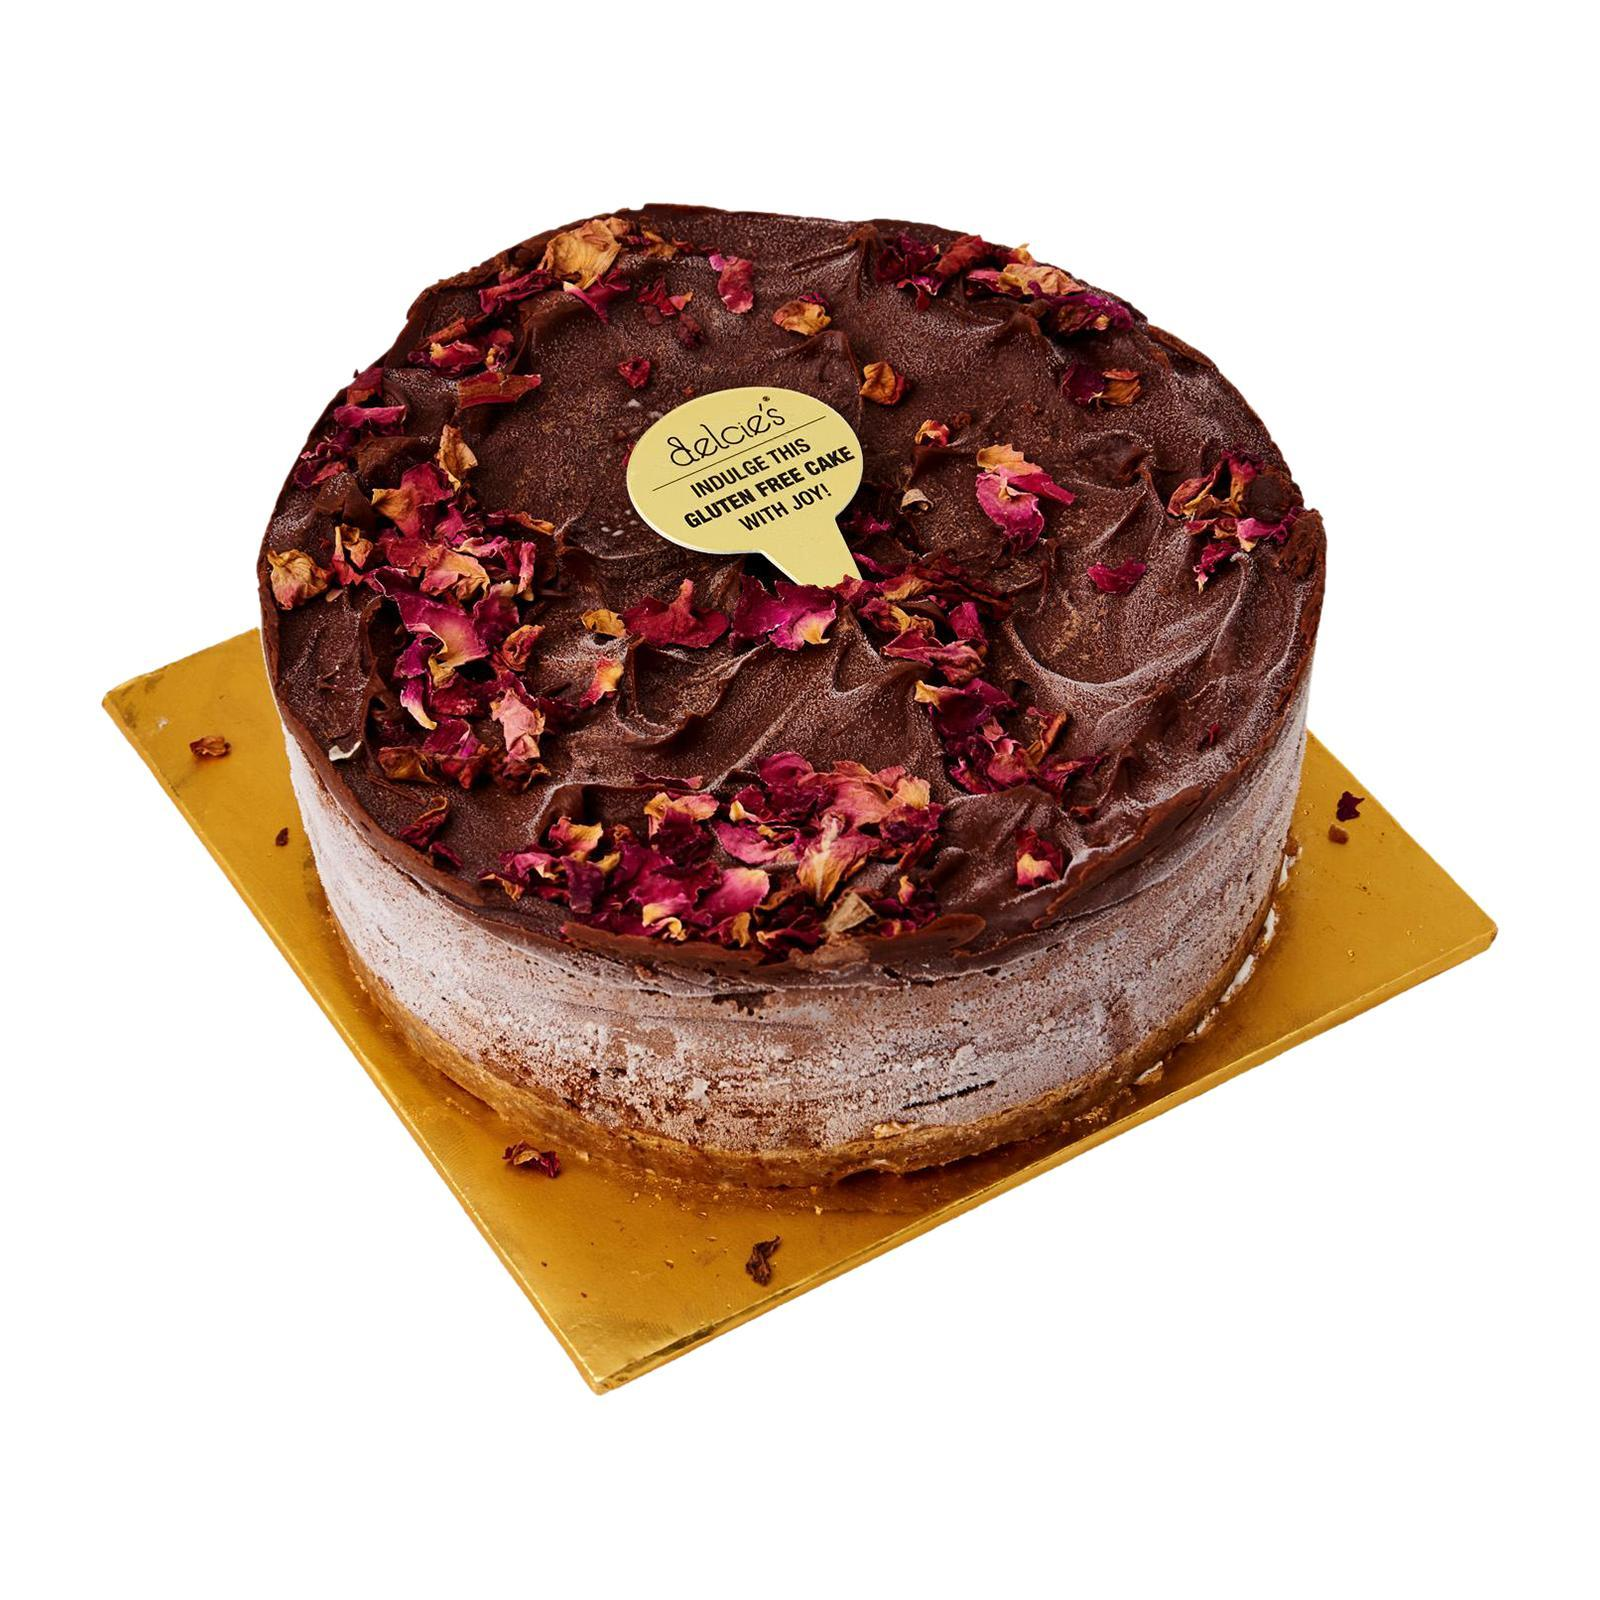 Delcie's Desserts and Cakes (6in round) Vegan Gluten-Free Nut-Free Diabetes Friendly Chocolate Cheesecake - Frozen